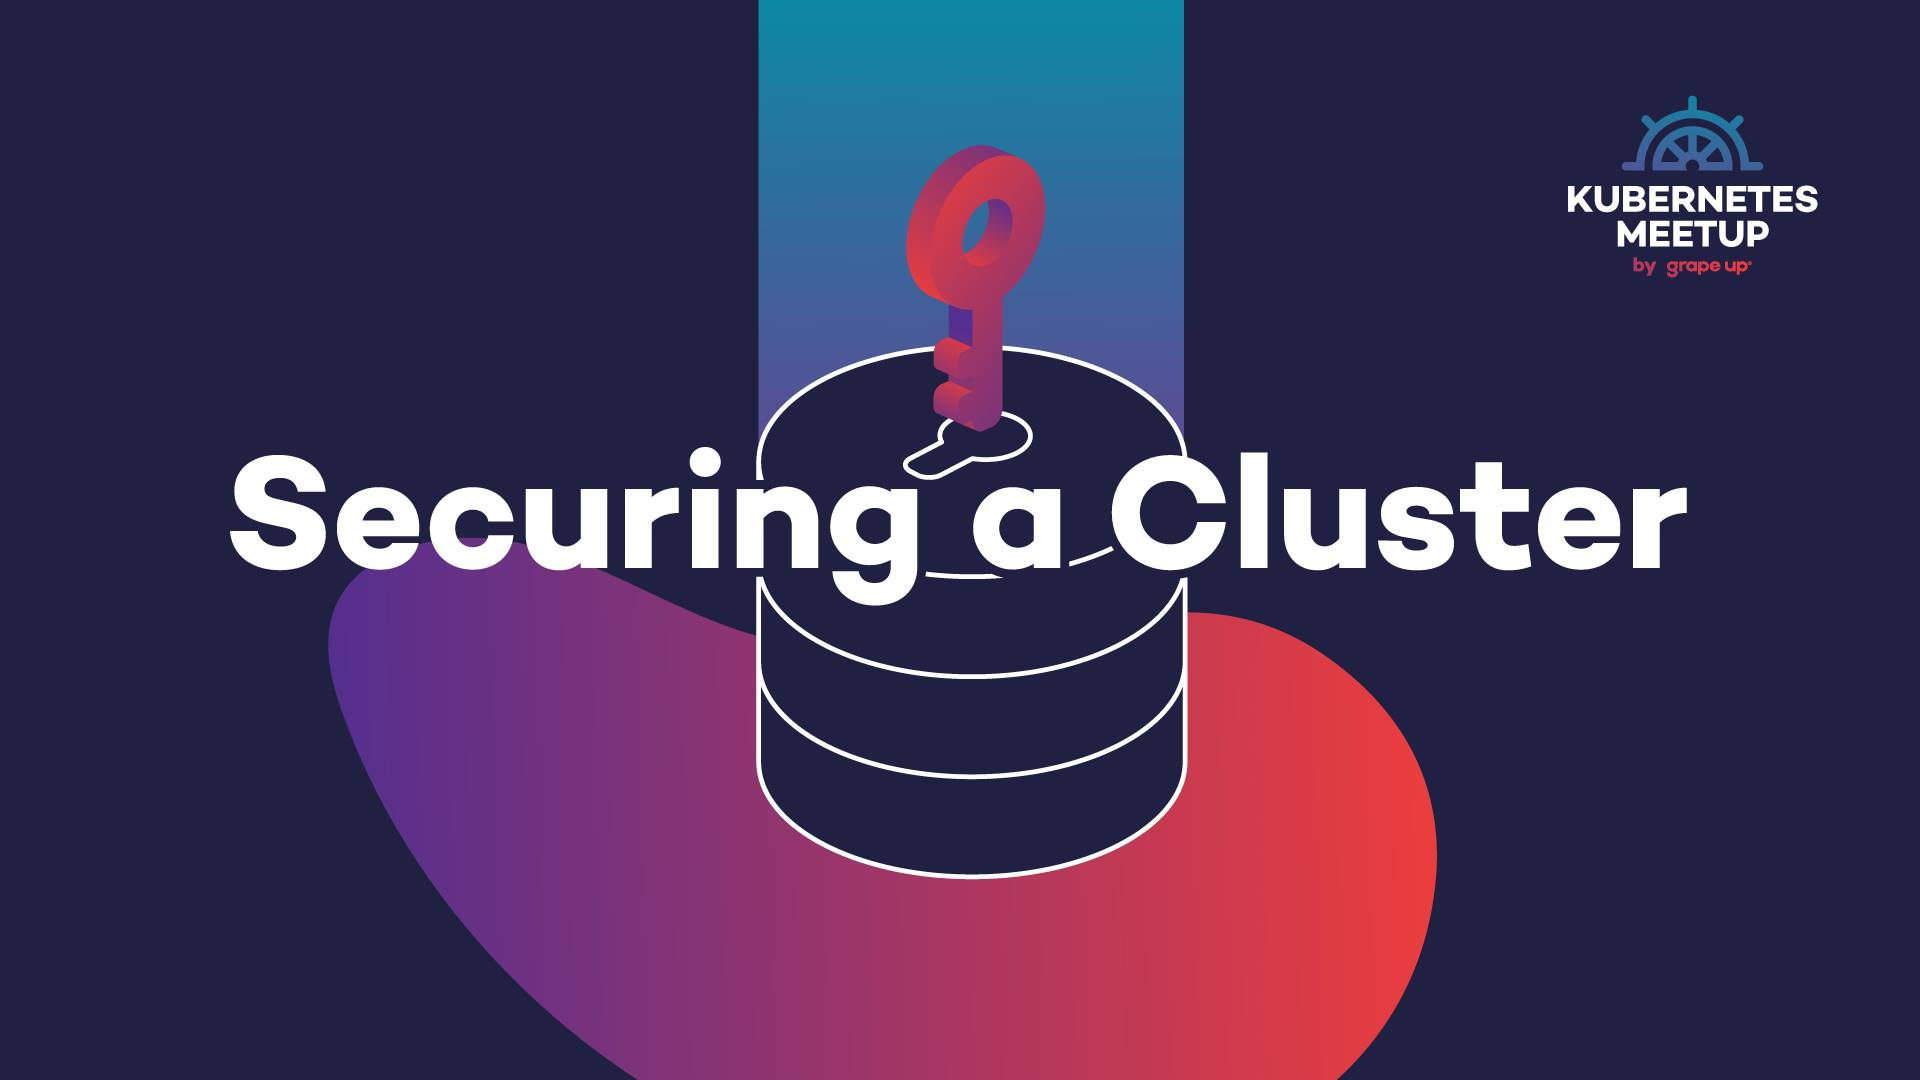 securing-a-cluster-kubernetes-meetup-by-grape-up-listopad-2019